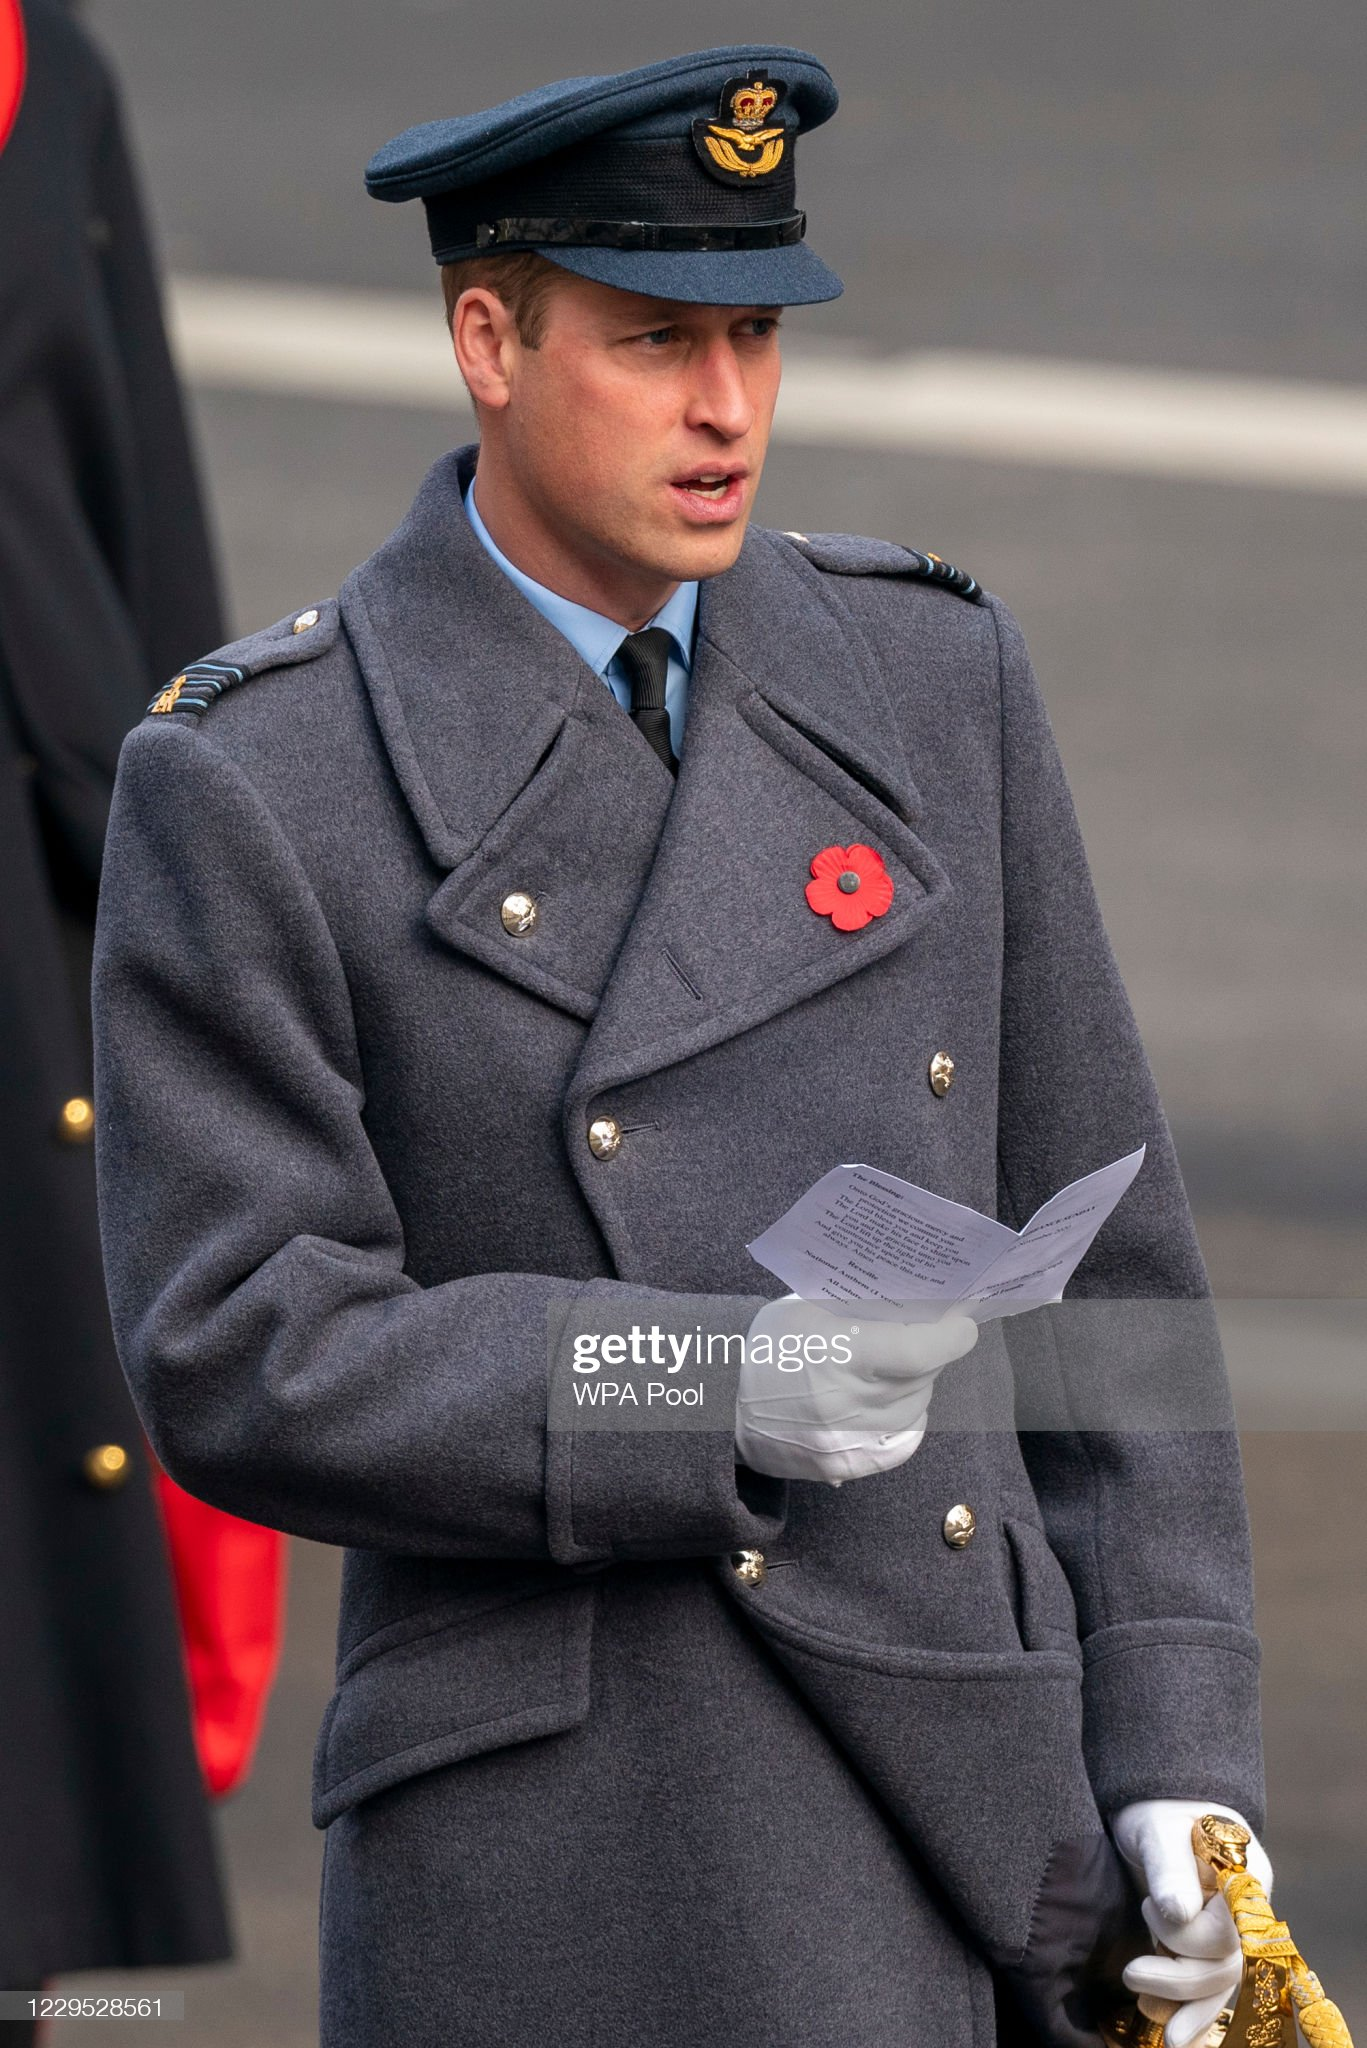 https://media.gettyimages.com/photos/prince-william-duke-of-cambridge-attends-the-national-service-of-at-picture-id1229528561?s=2048x2048